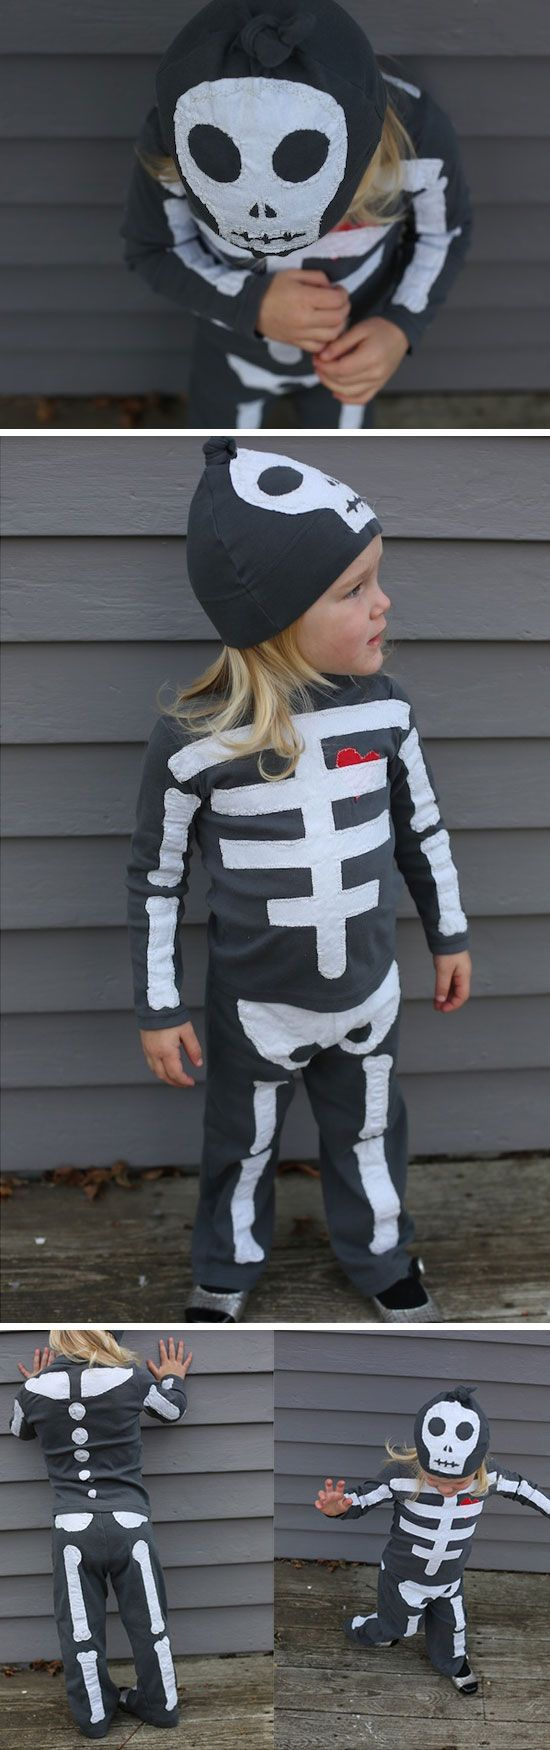 Best 25+ Halloween costumes for toddlers ideas on Pinterest ...